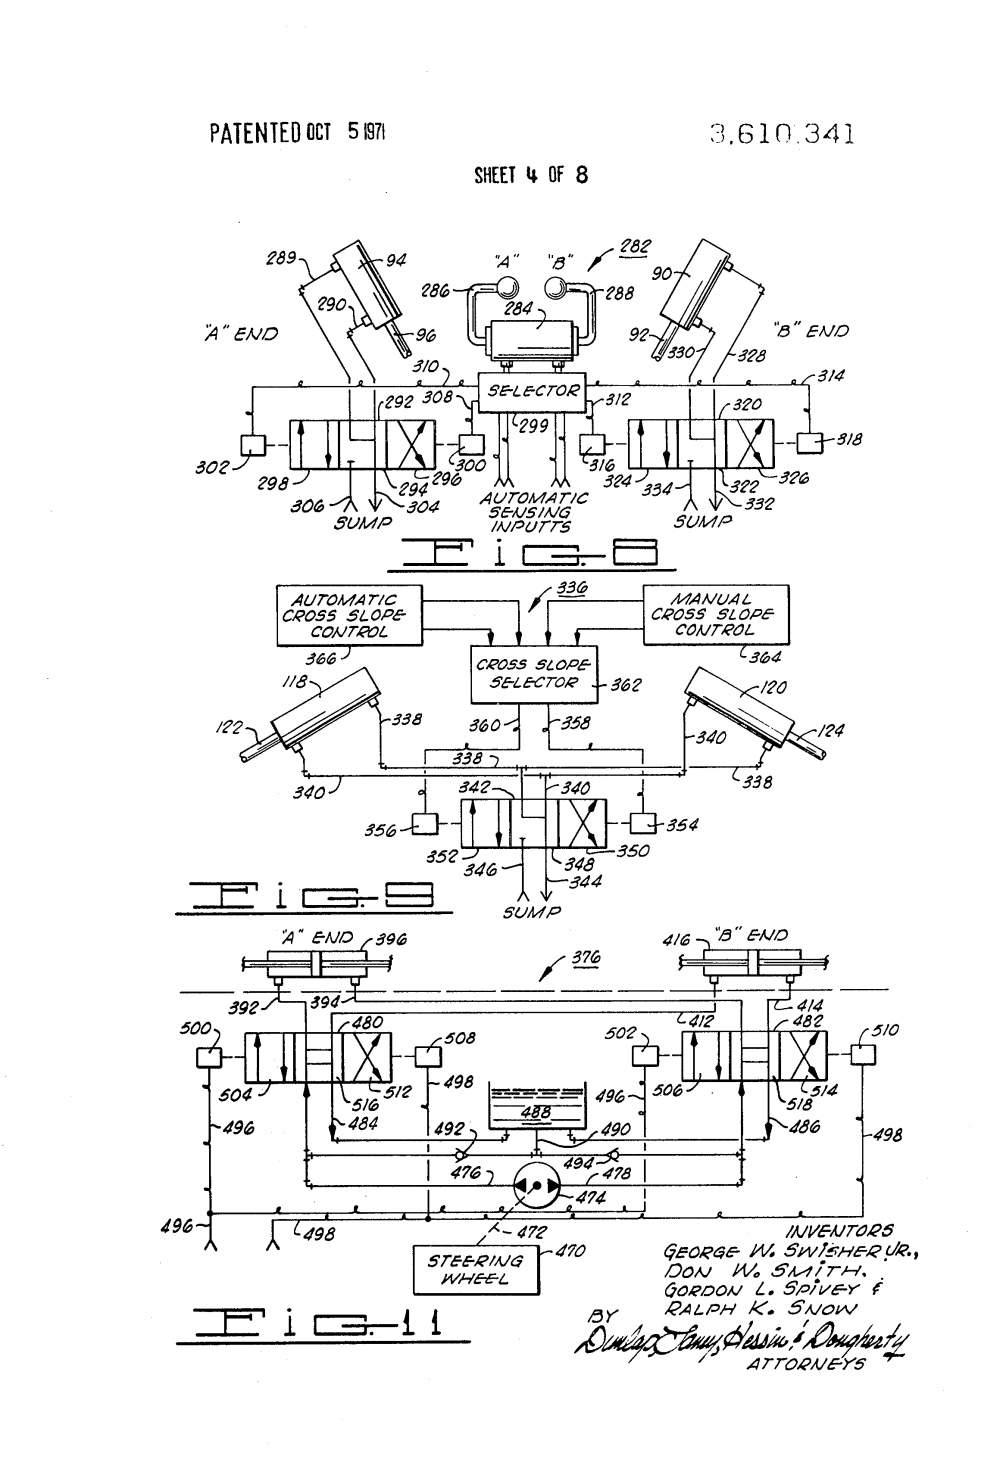 medium resolution of ih 584 wiring diagram best wiring diagramih 584 wiring diagram wiring diagram forward ih 584 wiring